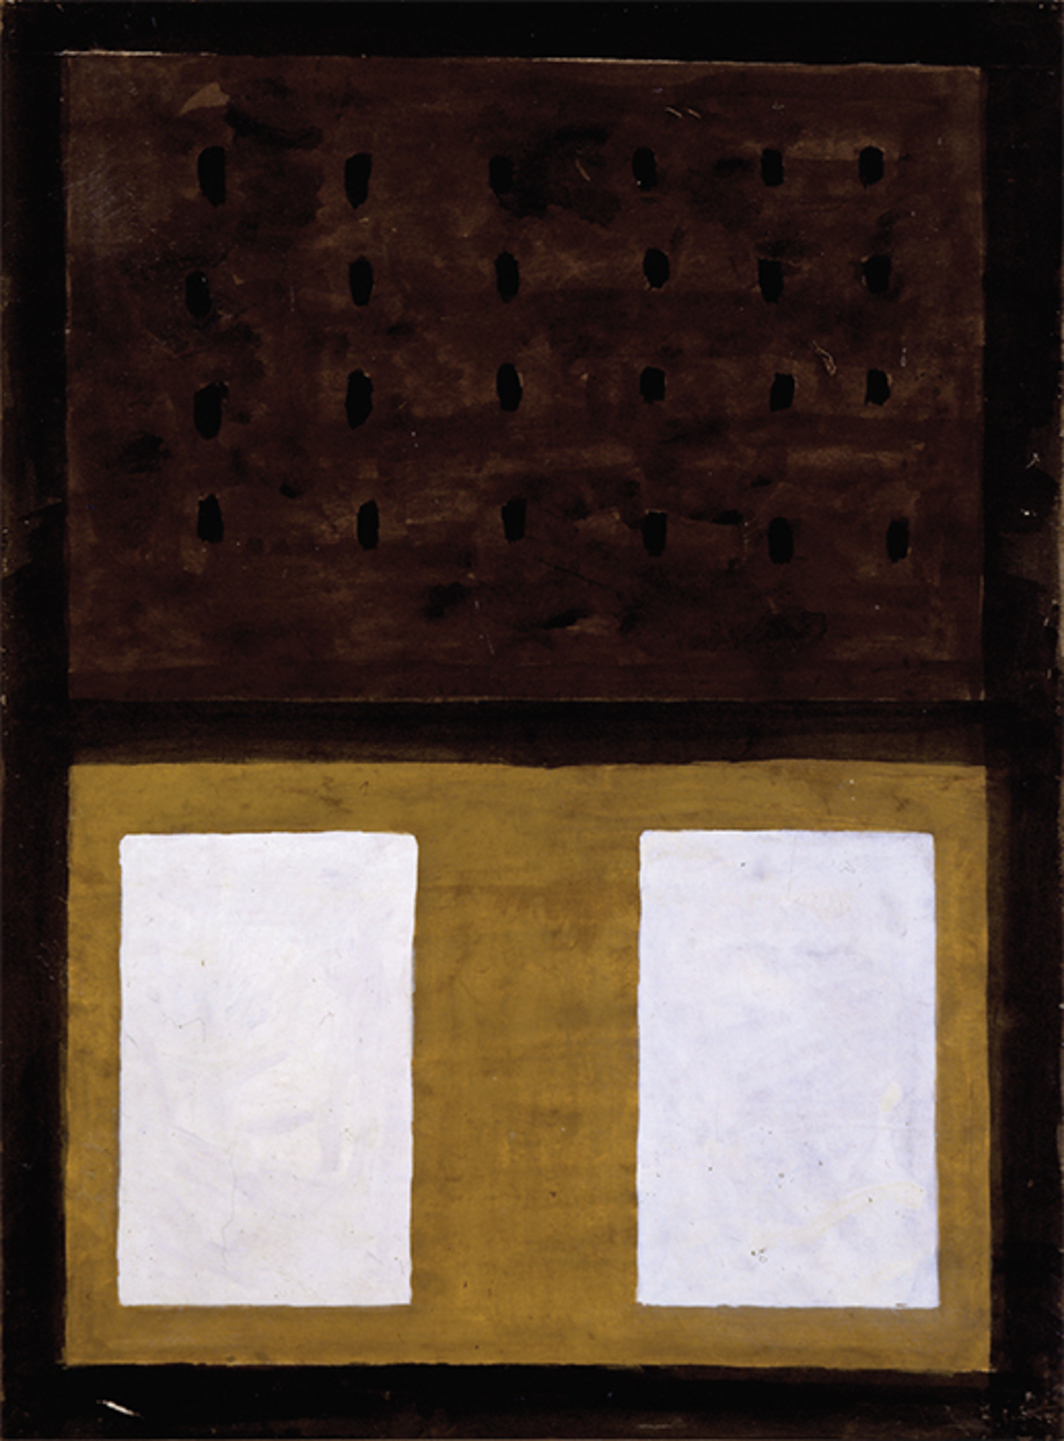 "Agnes Martin, The Book, 1959, gouache and ink on paper mounted on canvas, 24 × 17 7/8"". From ""Between Land and Sea: Artists of the Coenties Slip."" © Agnes Martin/Artists Rights Society (ARS), New York."